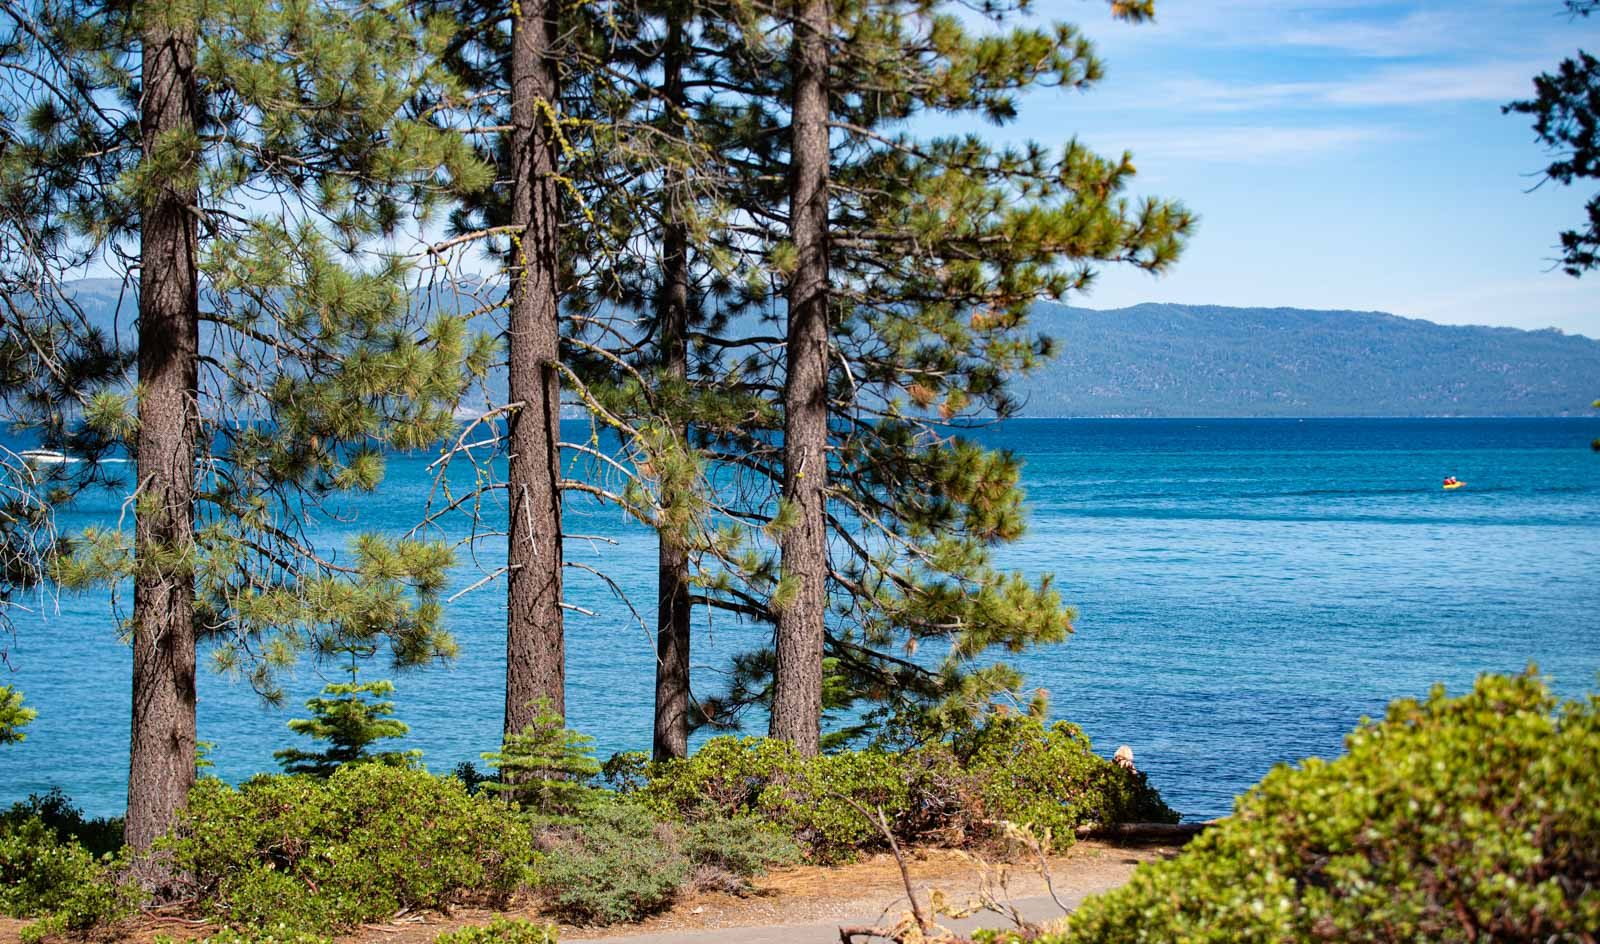 What a beautiful place, Lake Tahoe.